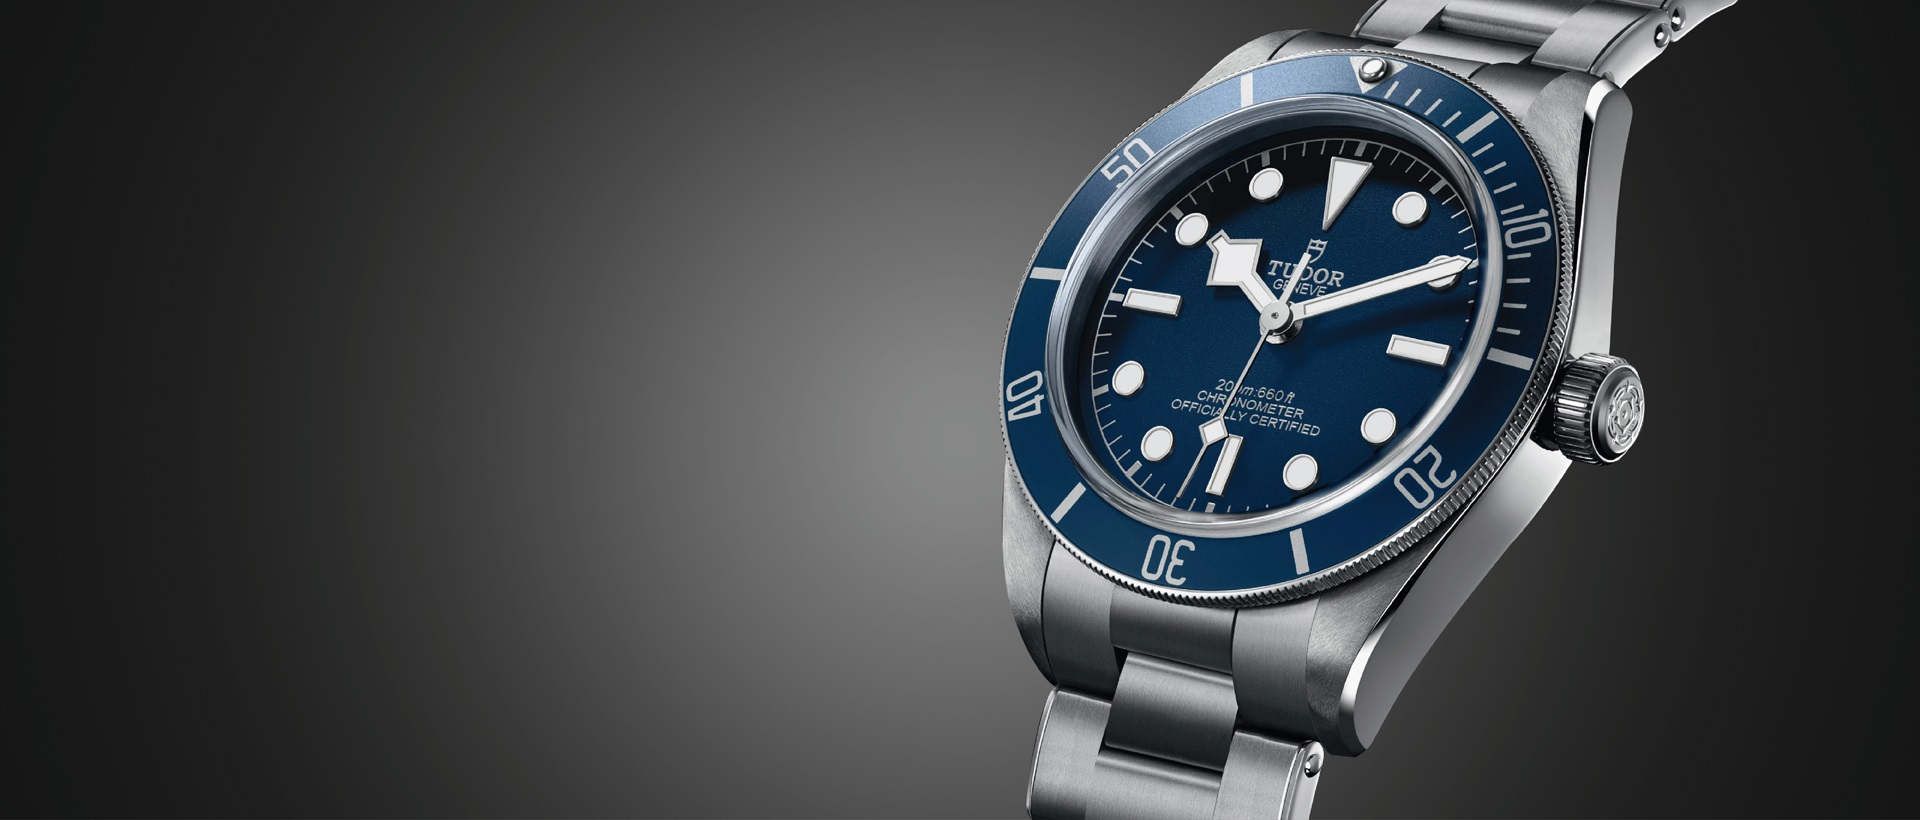 Tudor | CTF WATCH